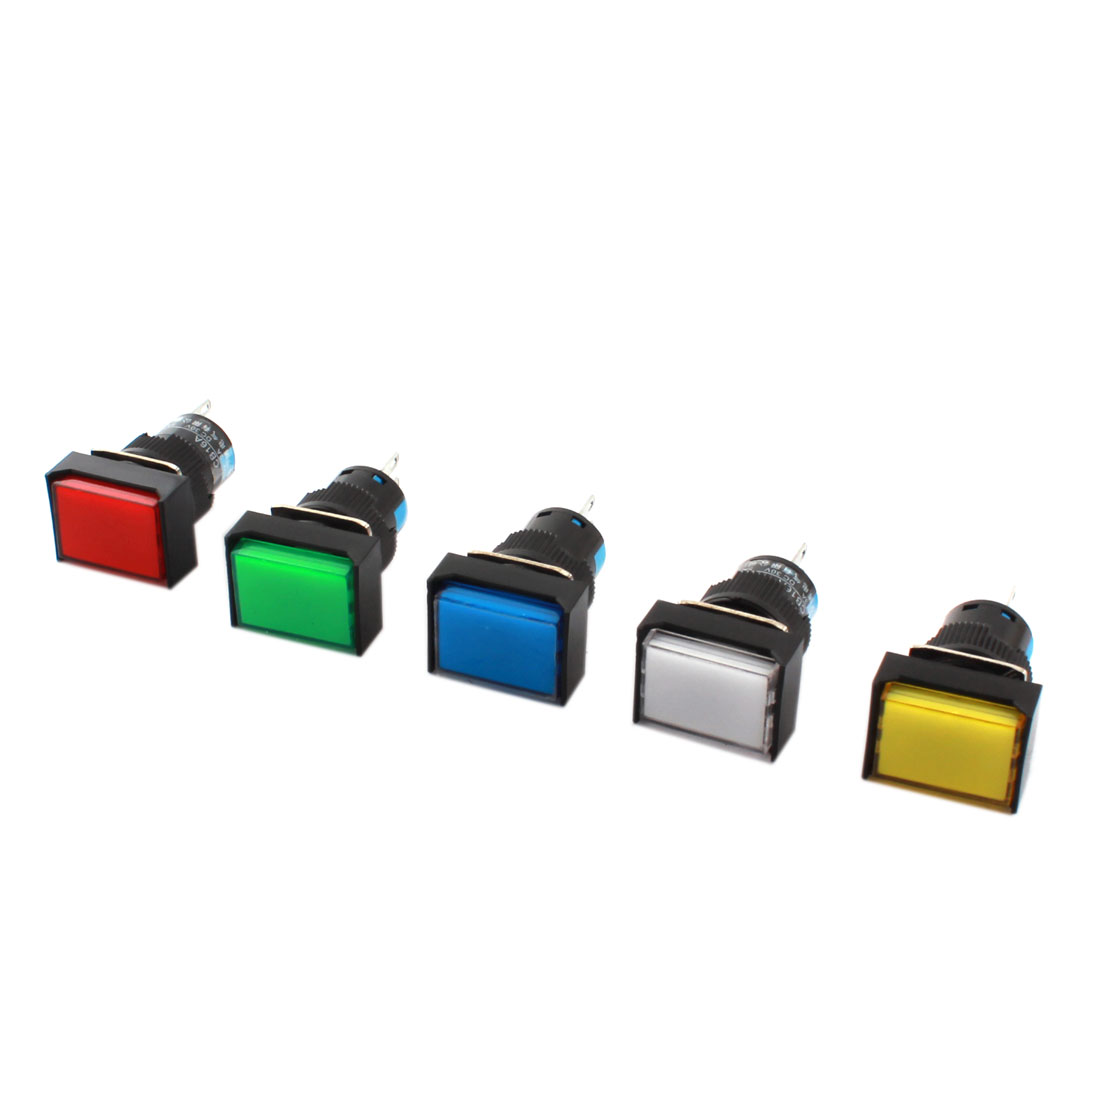 5 Pcs AC 250V 3A DC 30V 5A Assorted Color Button 16mm Thread Panel Mounted SPDT 3Pins Latching Type Rectangle Pushbutton Switch